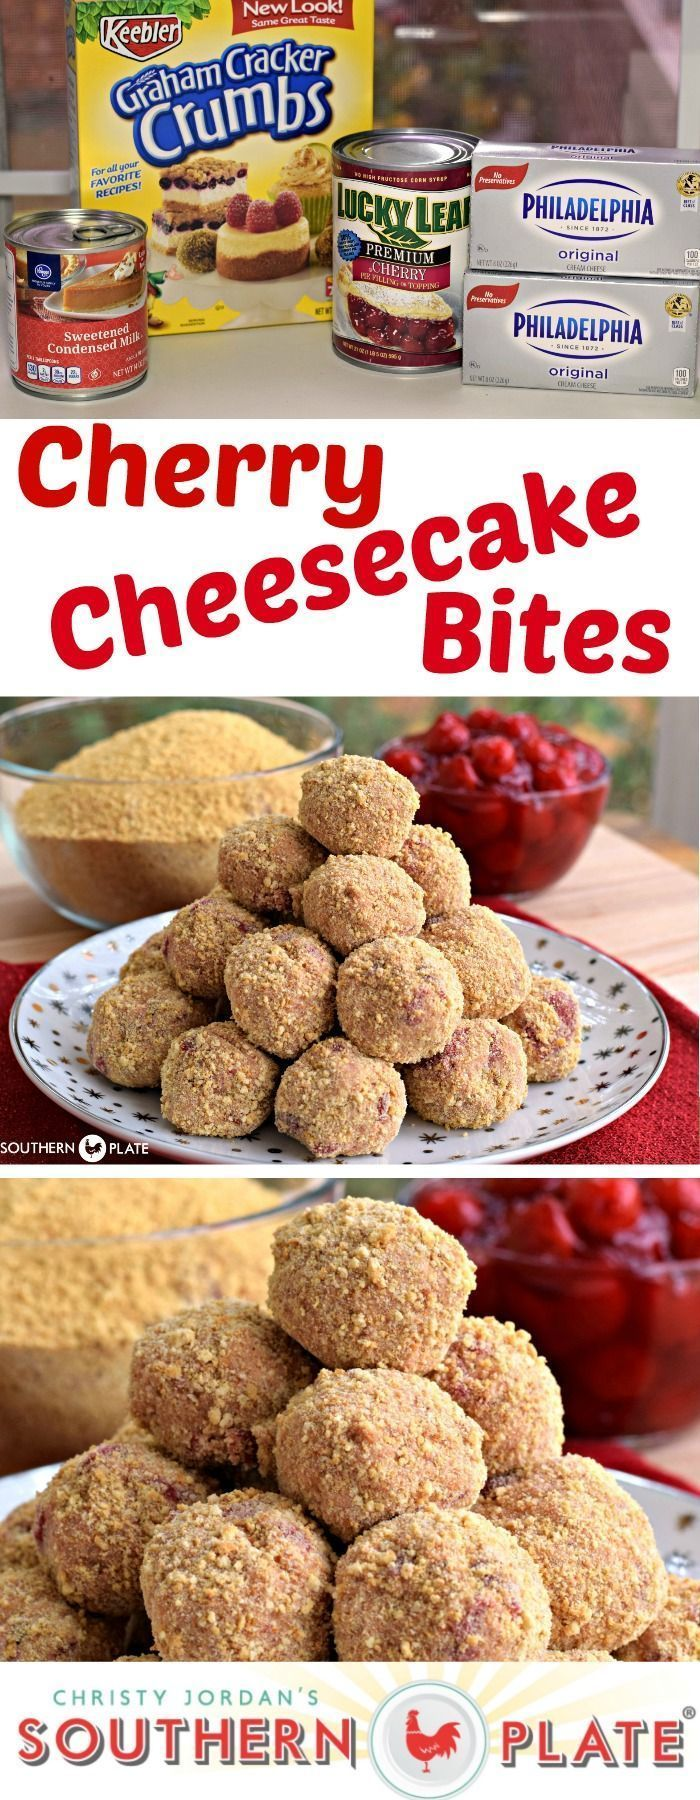 Cherry Cheesecake Bites - All the yum in bite size form! #easy #recipes #desserts #cheesecake